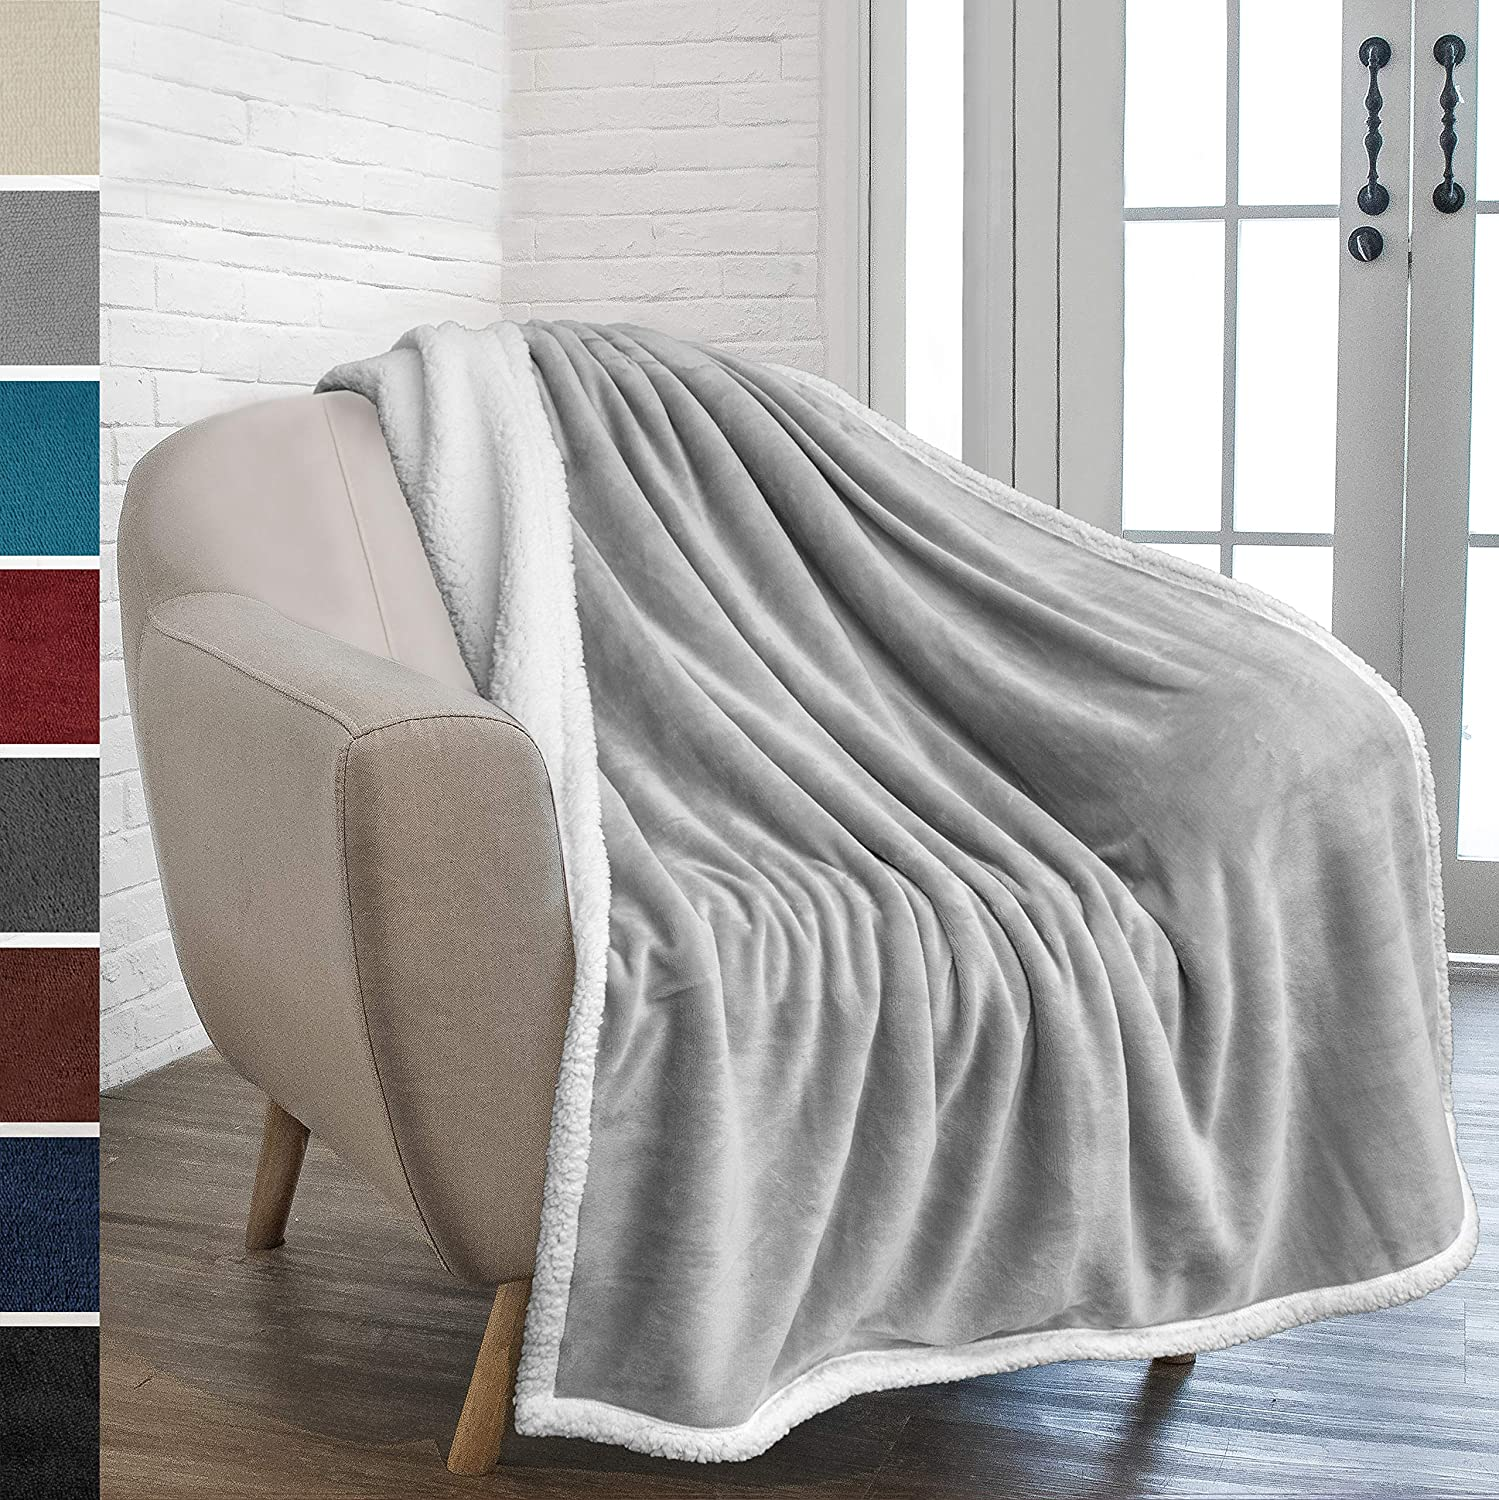 PAVILIA Premium Sherpa Fleece Throw Blanket | Soft, Plush, Fuzzy Light Gray Throw | Reversible Warm Cozy Microfiber Solid Blanket for Couch Sofa (Light Grey, 50x60 Inches)